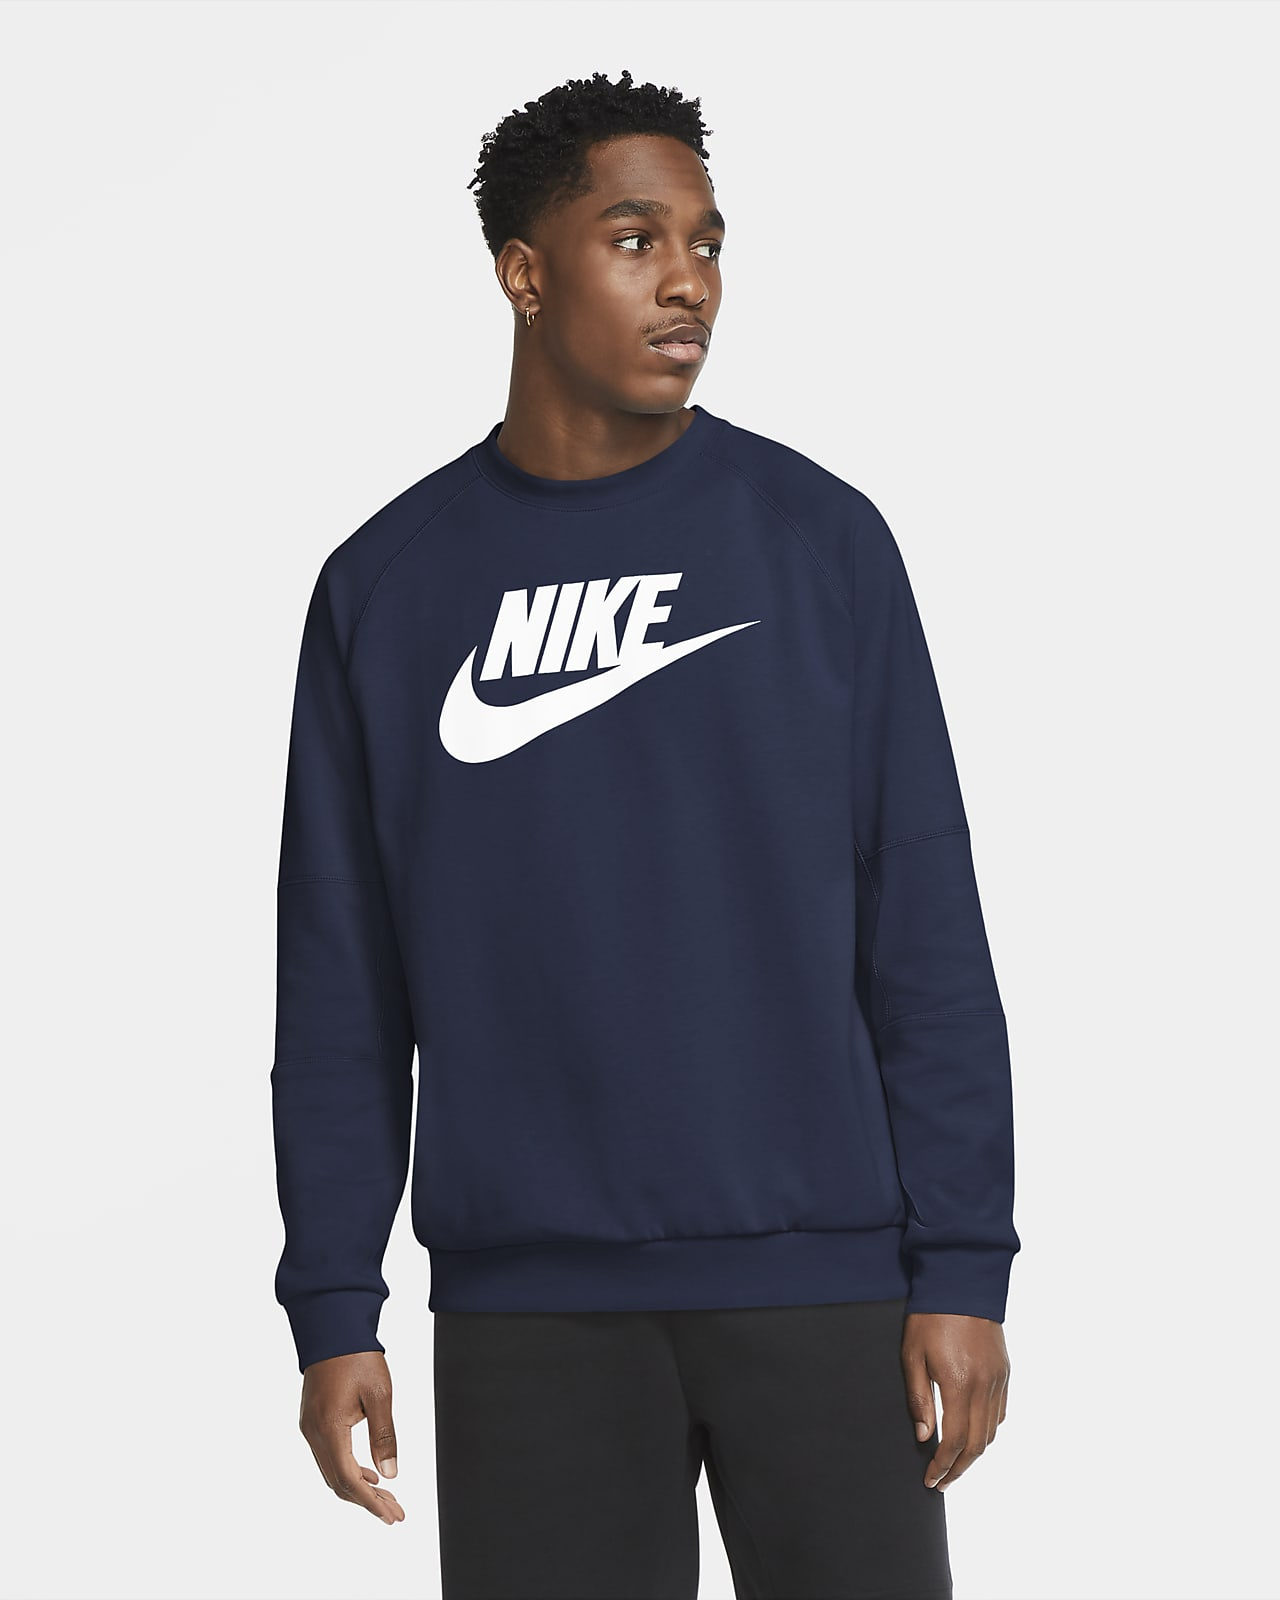 Nike Sportswear Men's Fleece Crew